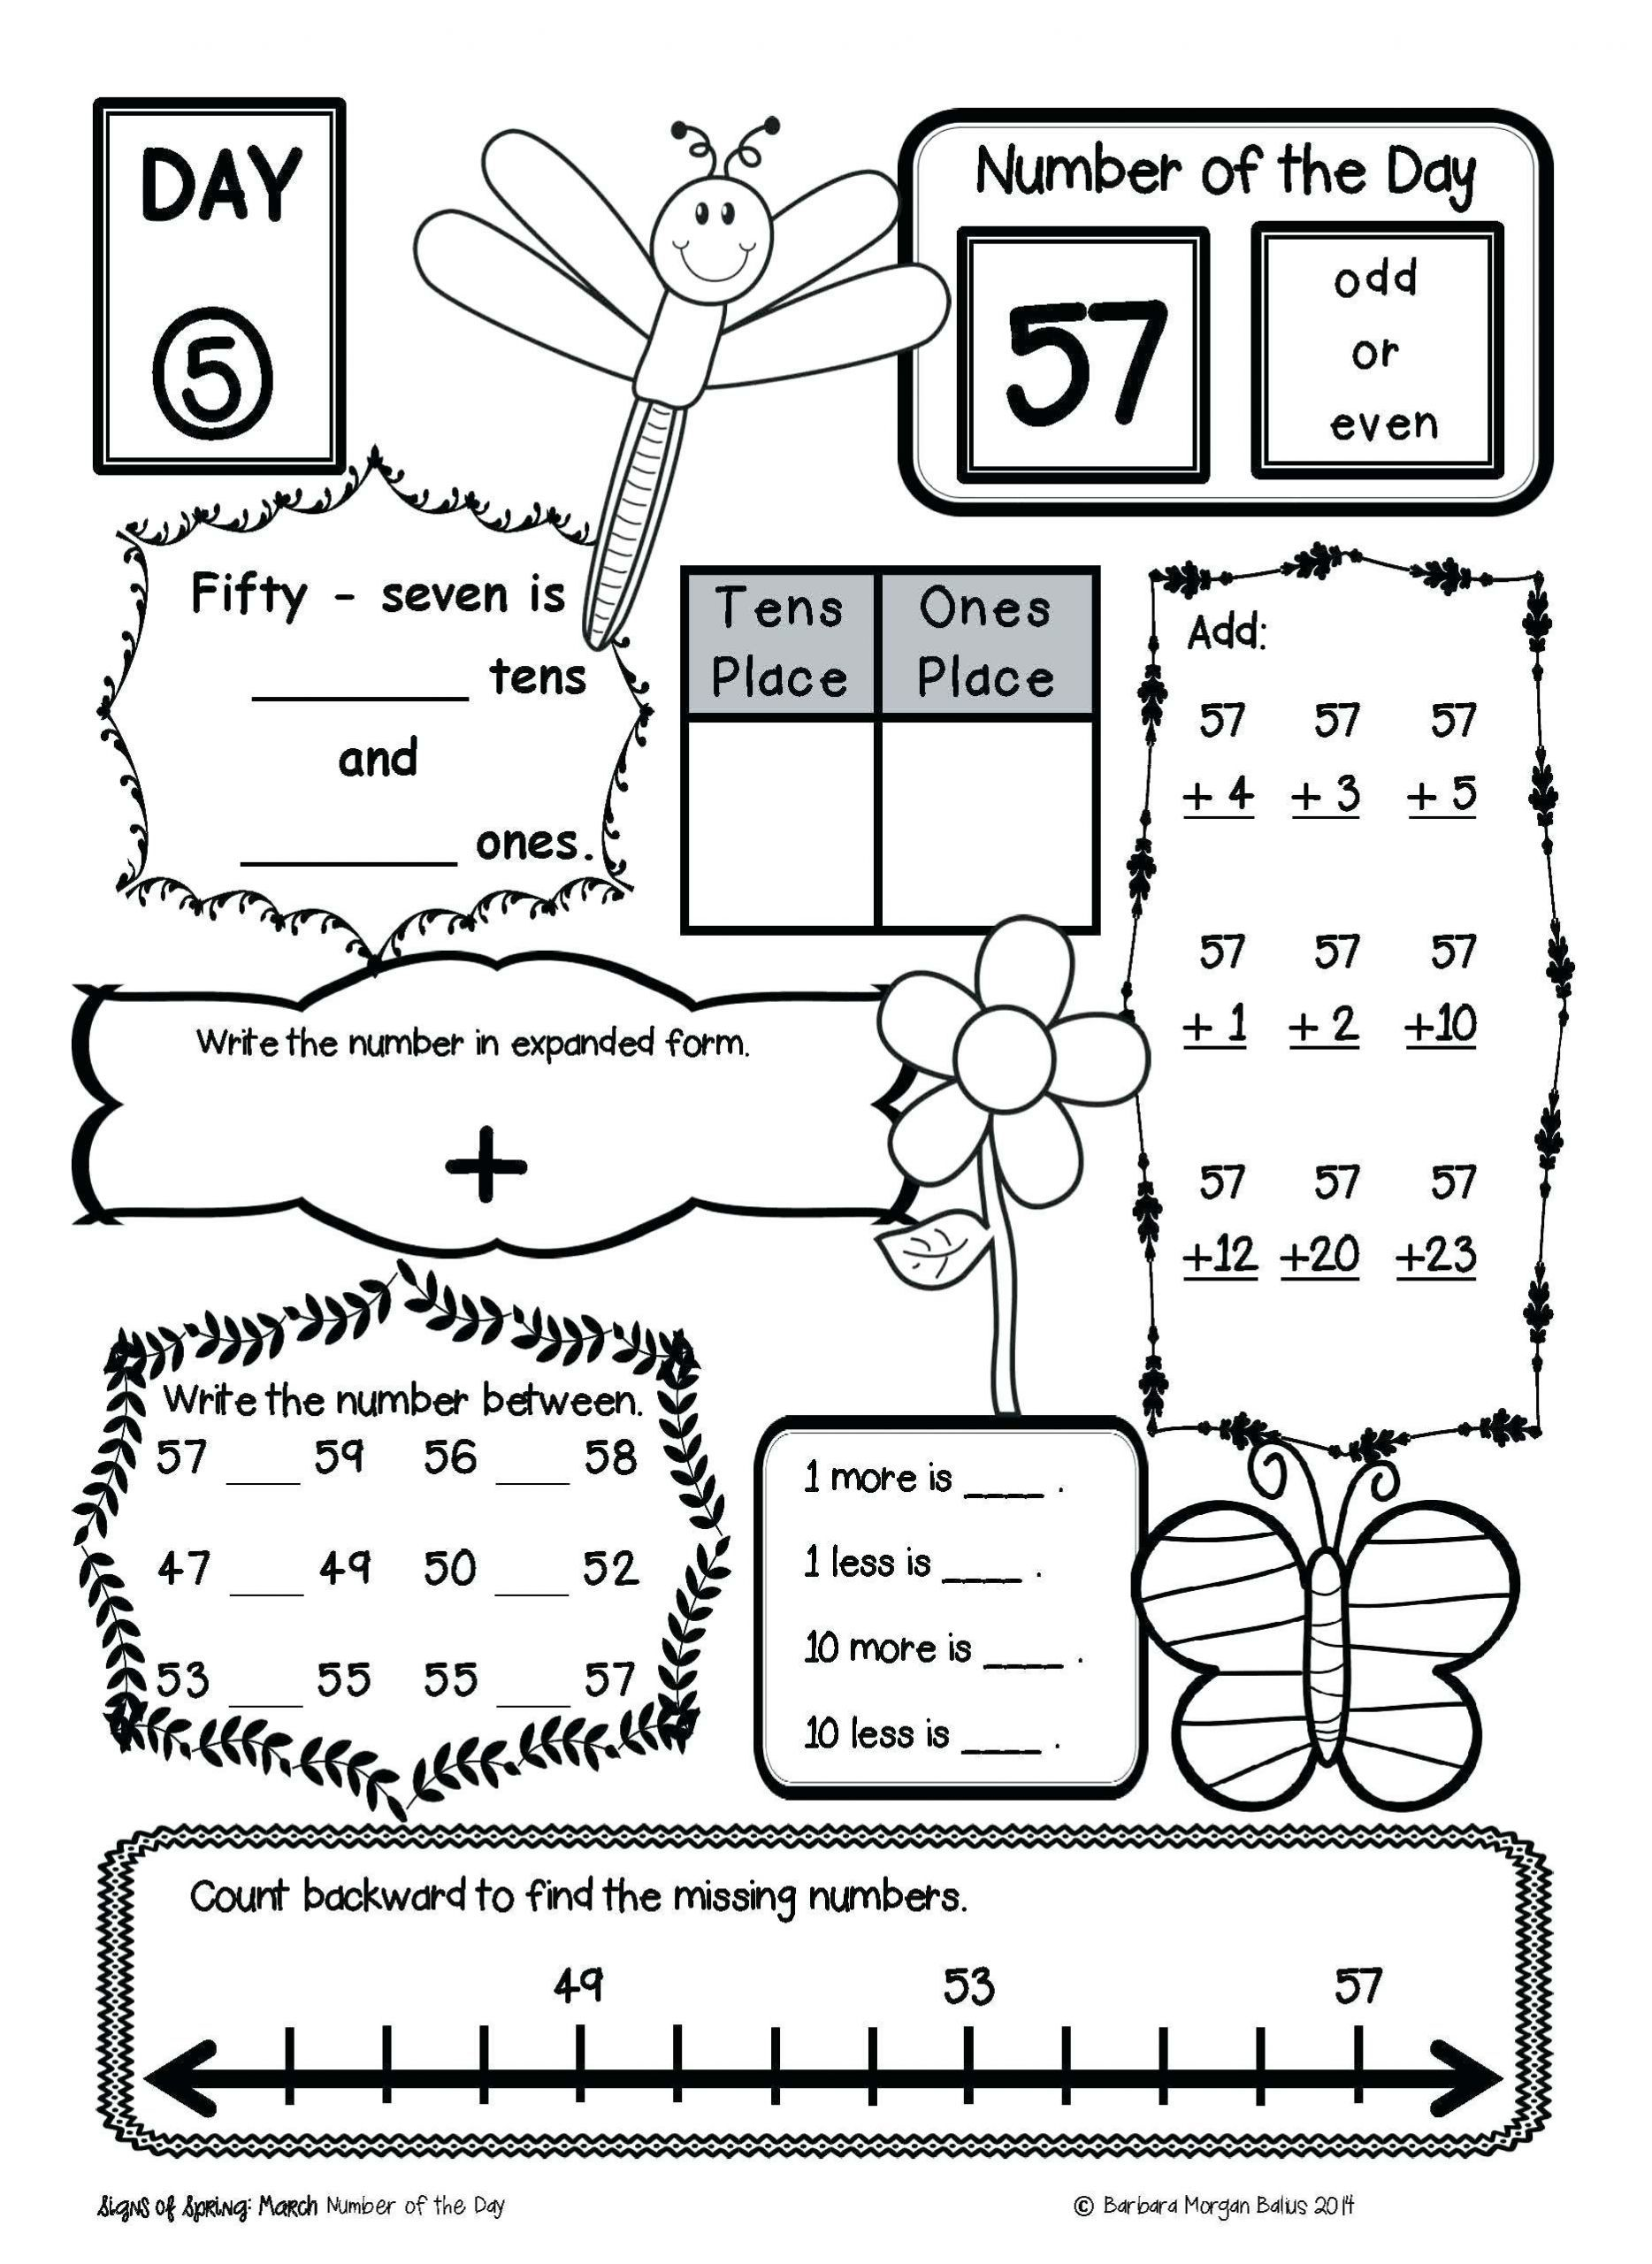 5 Free Math Worksheets Second Grade 2 Skip Counting Skip Counting Backwards By 10 Fall Worksh First Grade Worksheets First Grade Math Free Math Worksheets [ 2560 x 1868 Pixel ]